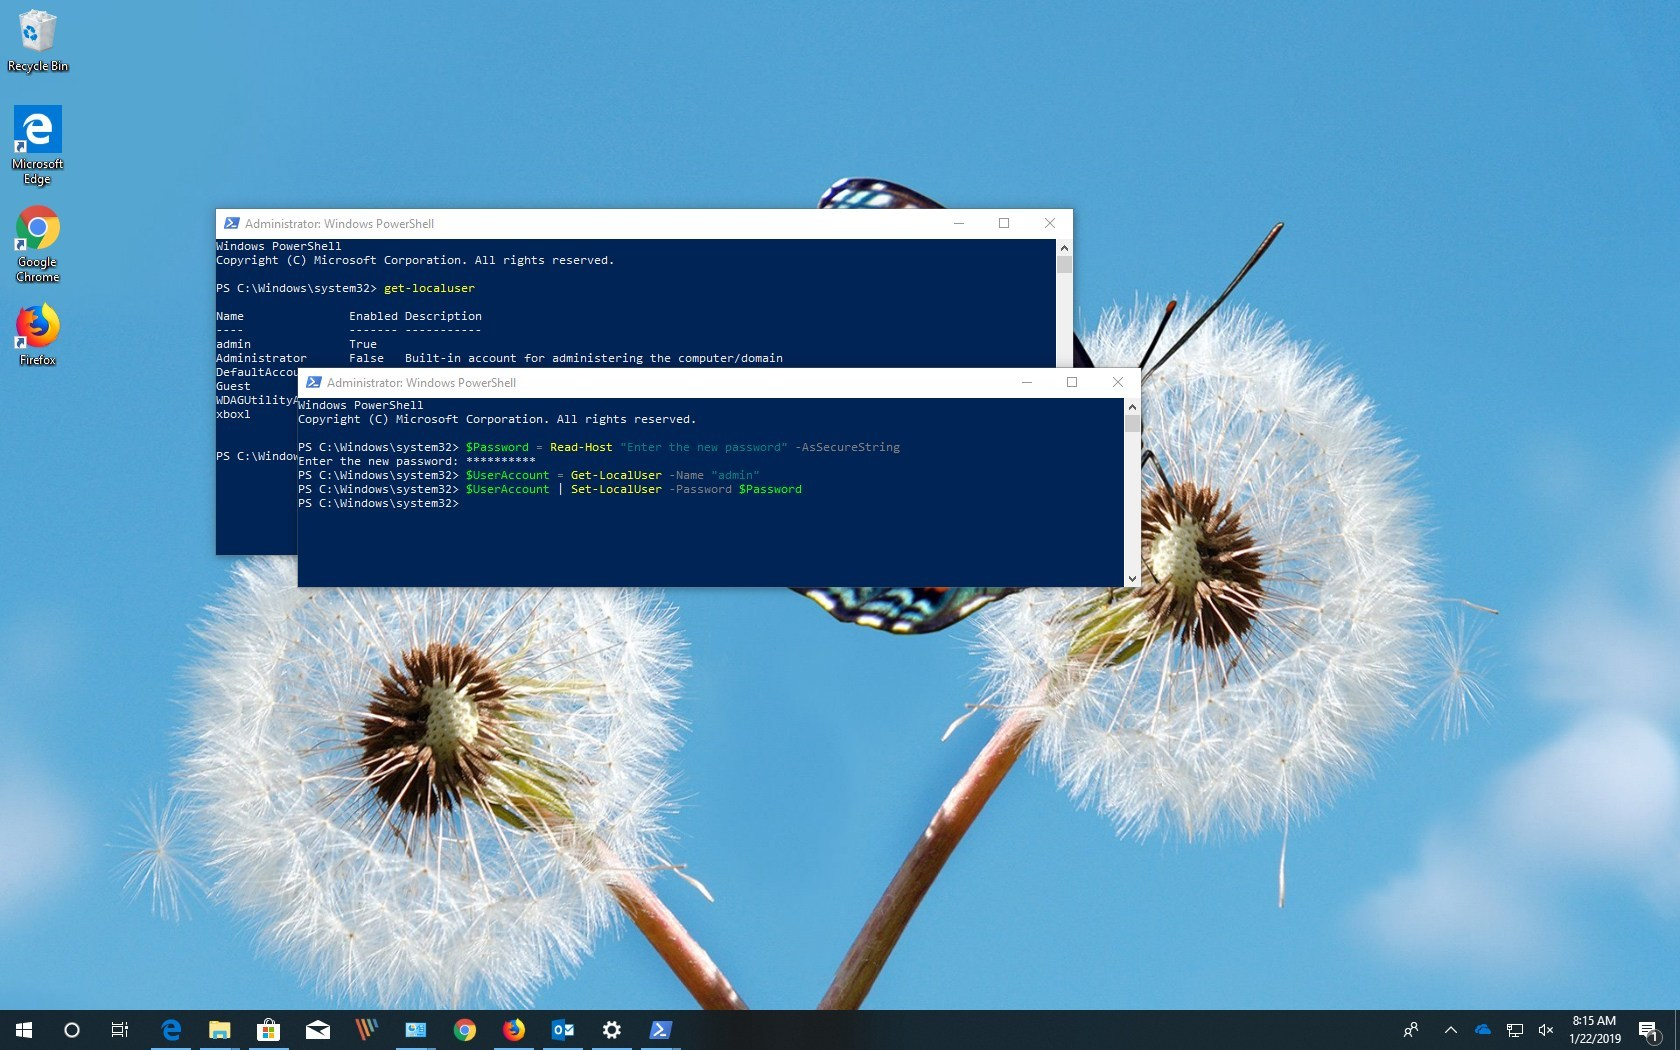 How to change account password using PowerShell on Windows 10